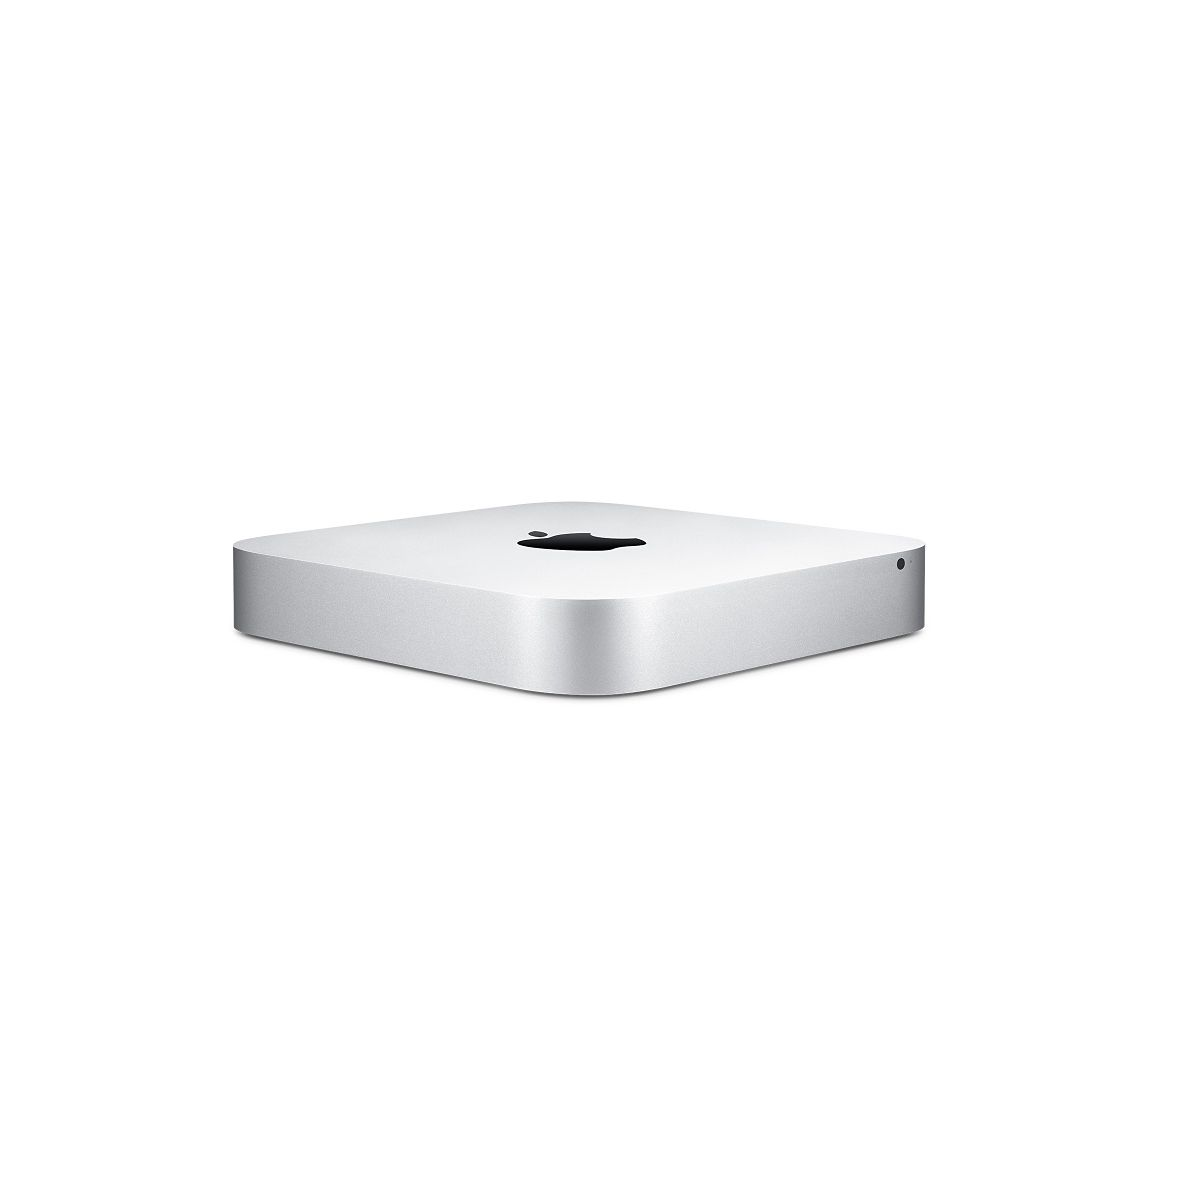 Apple mac mini 1.4ghz 4go 500go - mgem2f/a (photo)